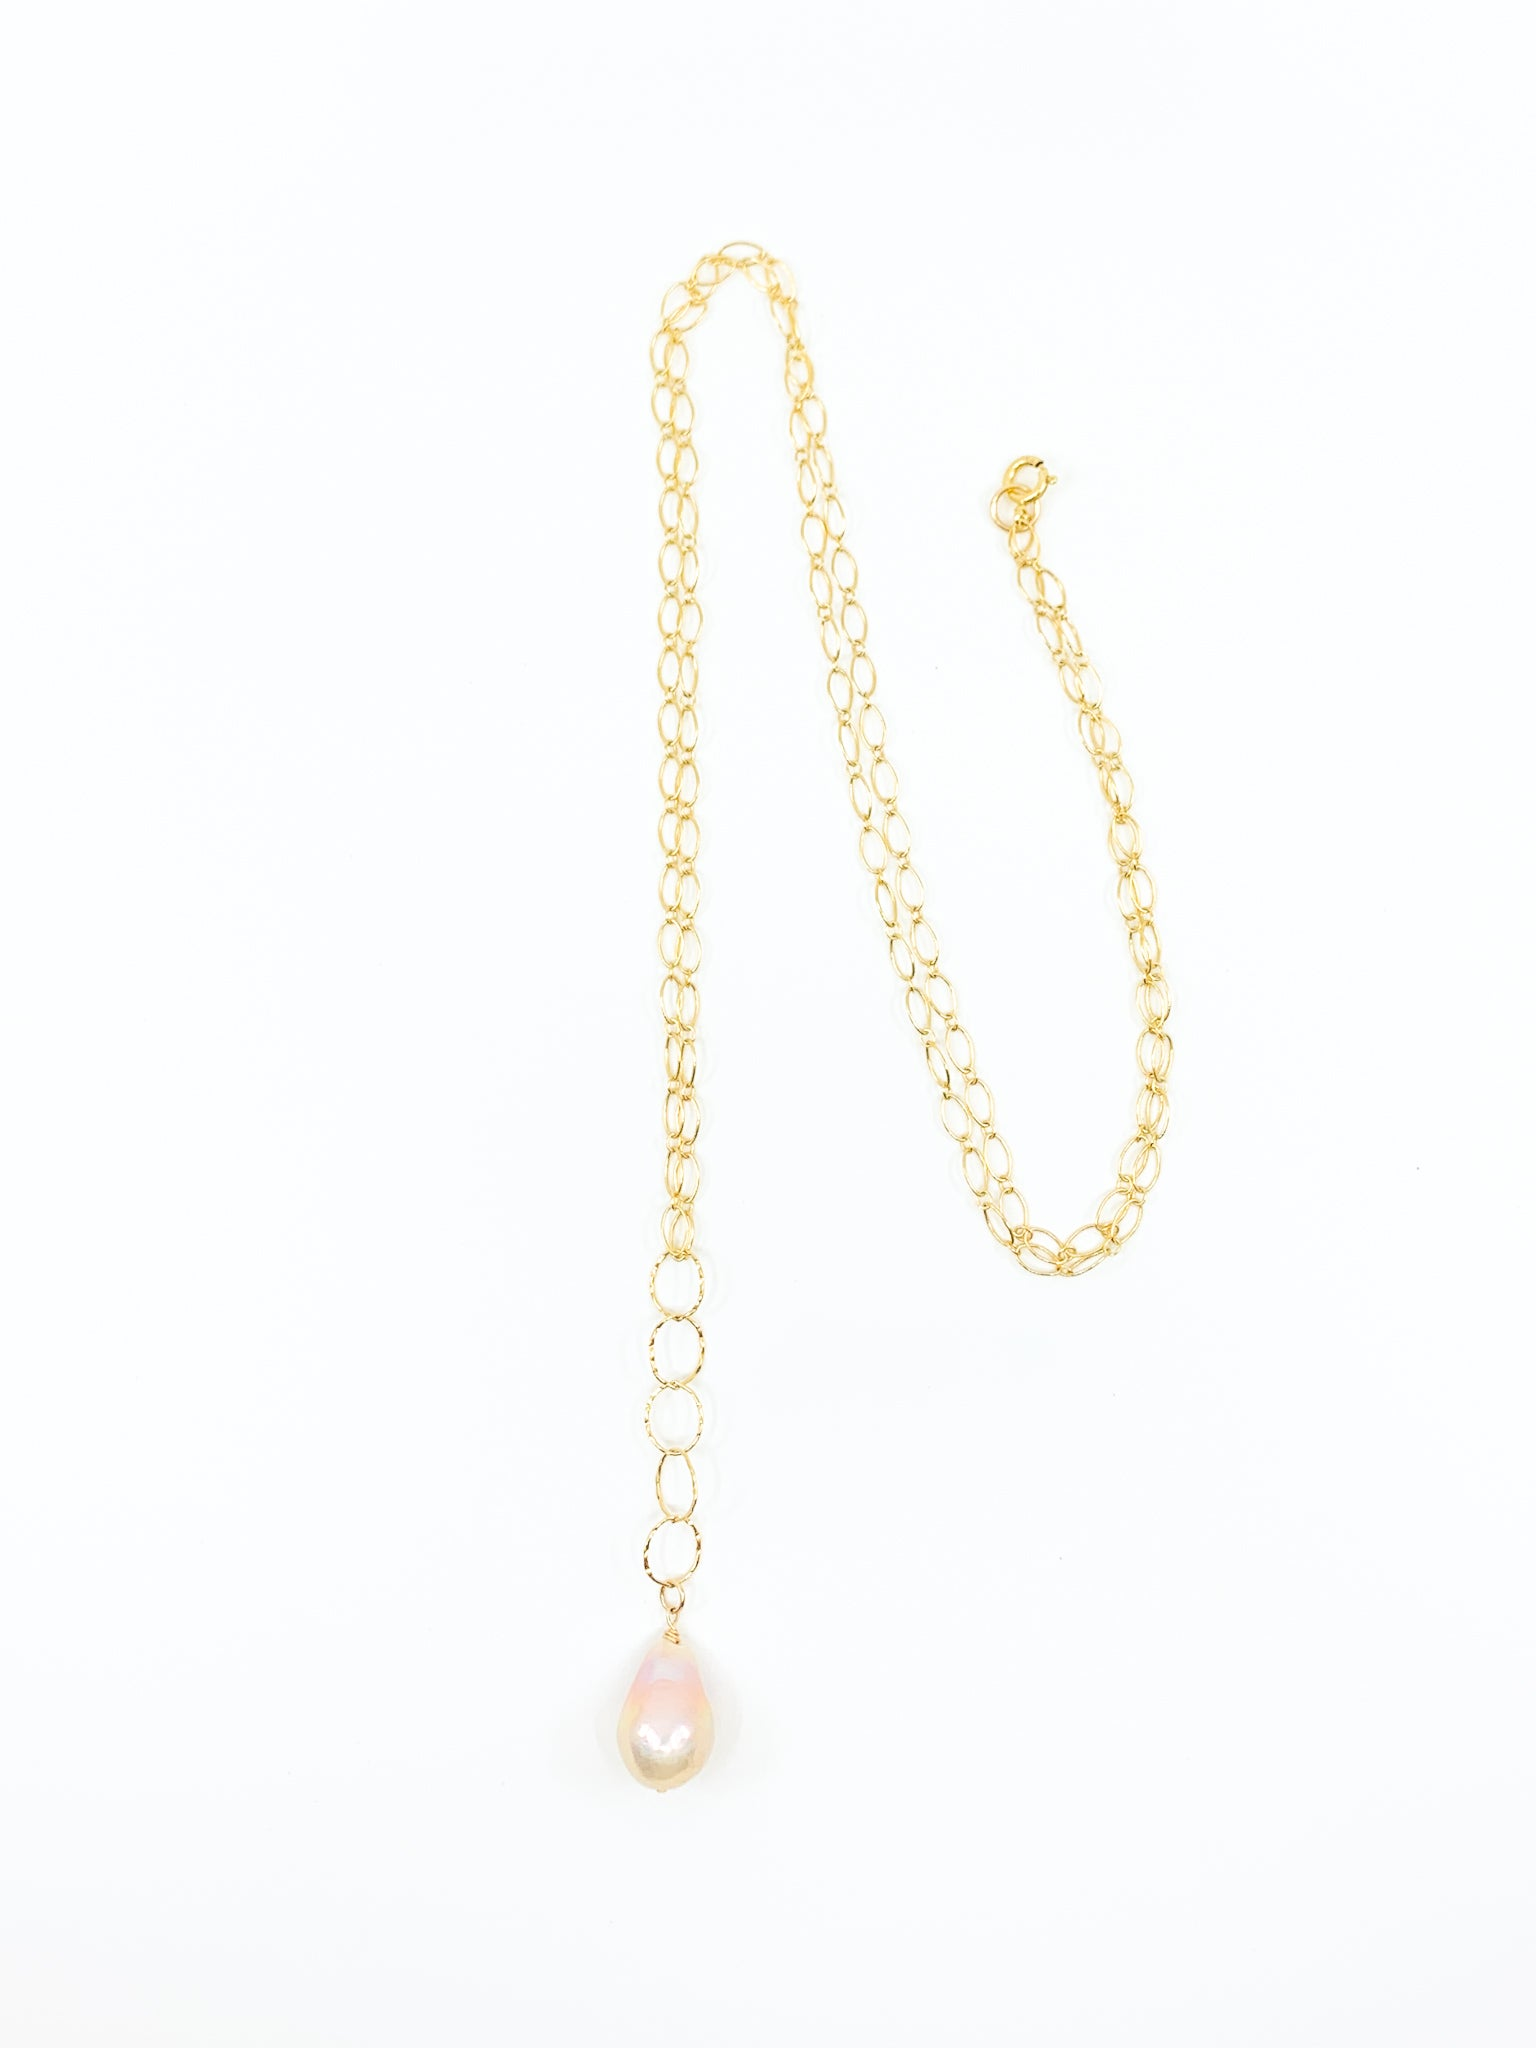 natural pink pearl long gold necklace by eve black jewelry made in Hawaii